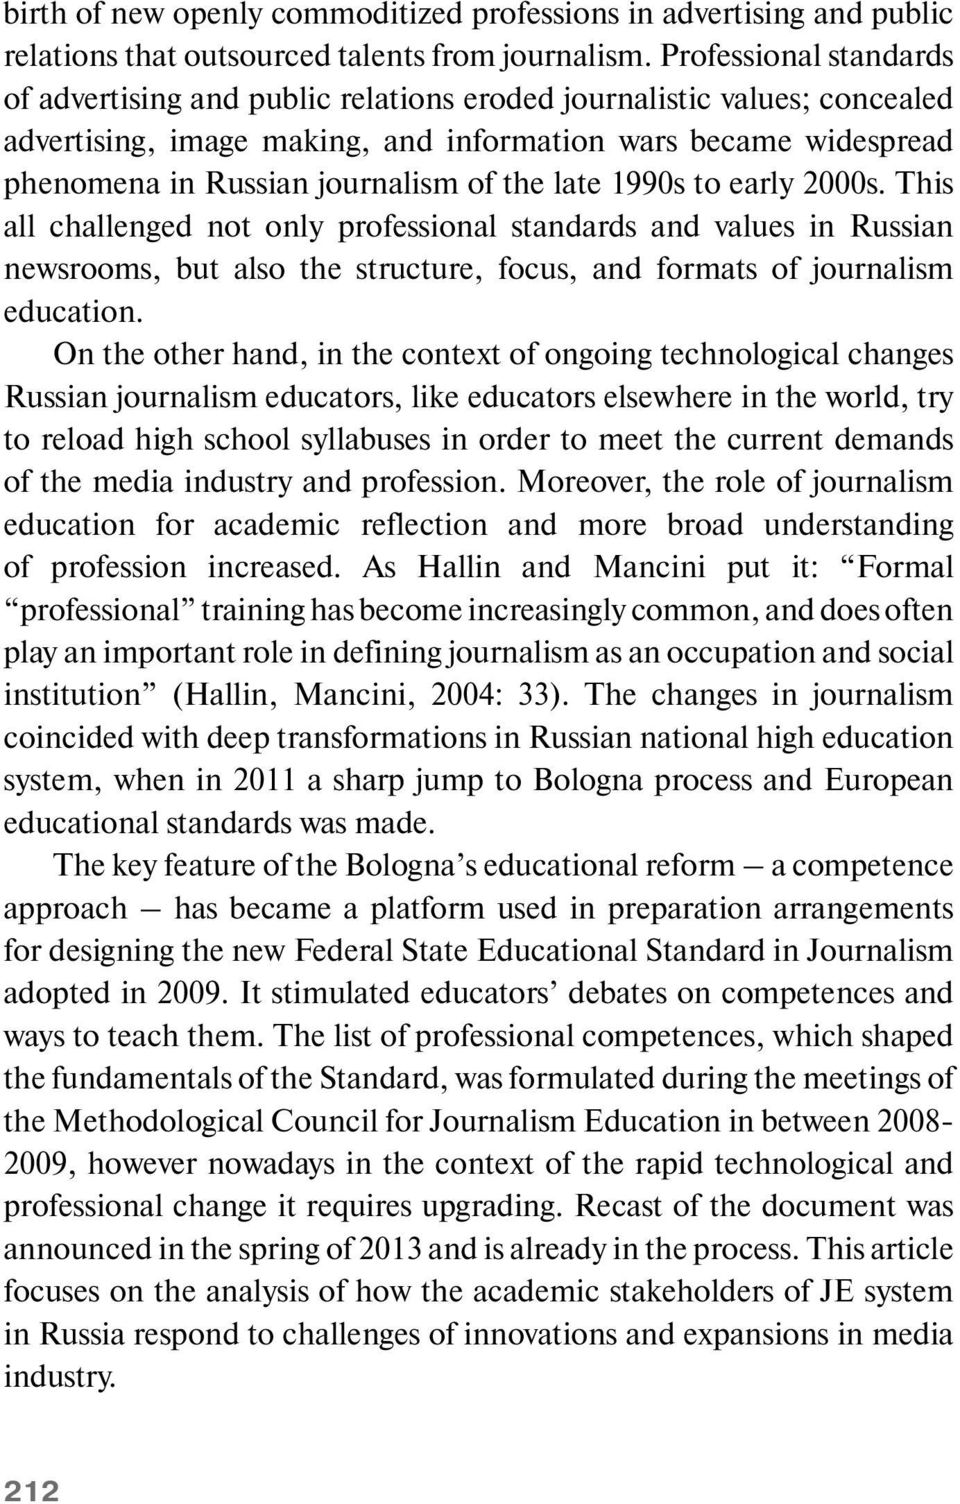 the late 1990s to early 2000s. This all challenged not only professional standards and values in Russian newsrooms, but also the structure, focus, and formats of journalism education.